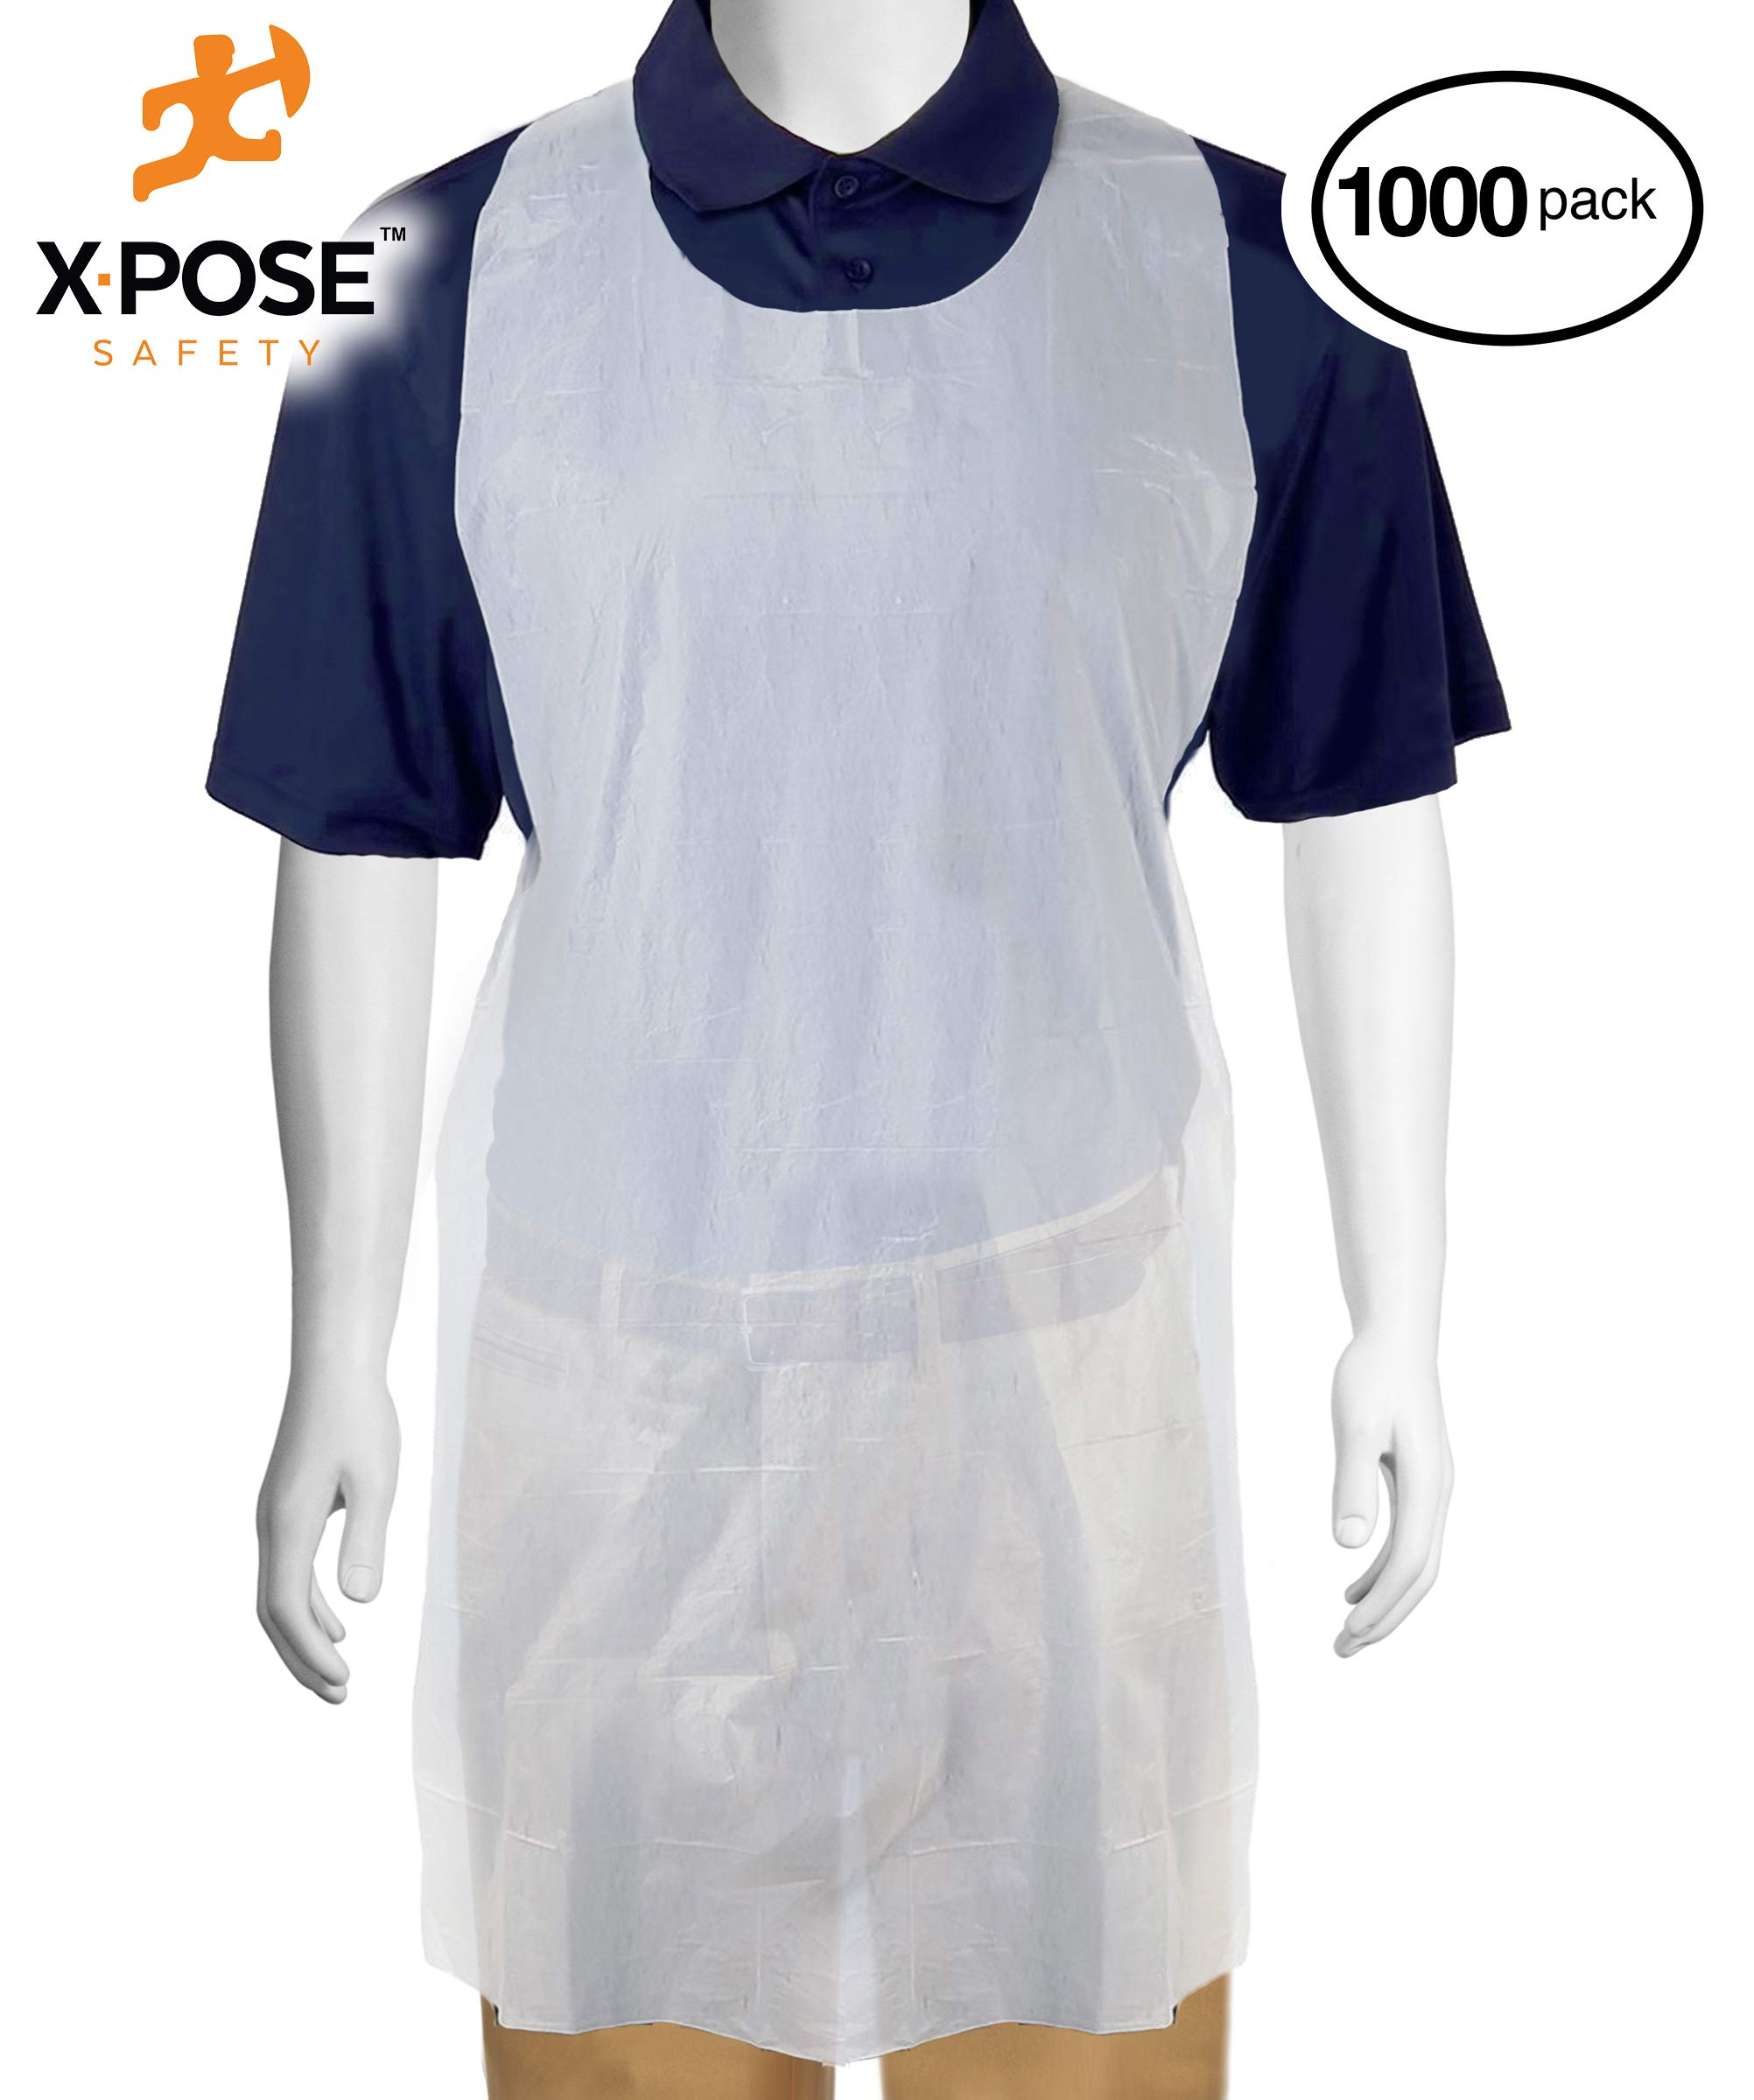 Disposable White Poly Aprons 1 Case (1000 Count) by Comfitwear